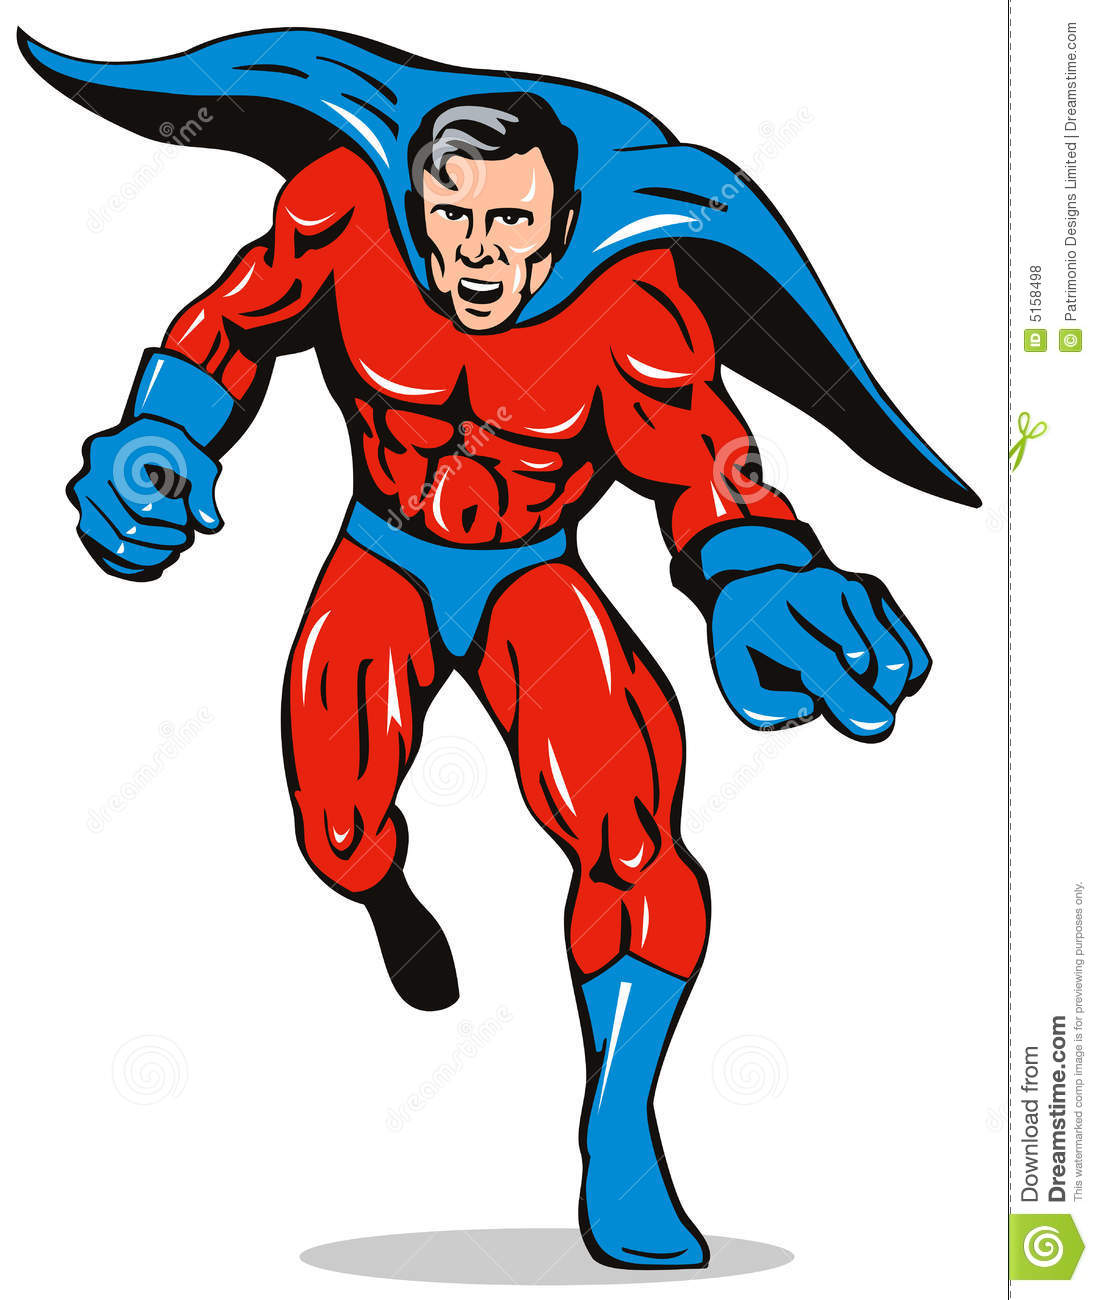 Superhero Running Royalty Free Stock Photos  Image: 5158498